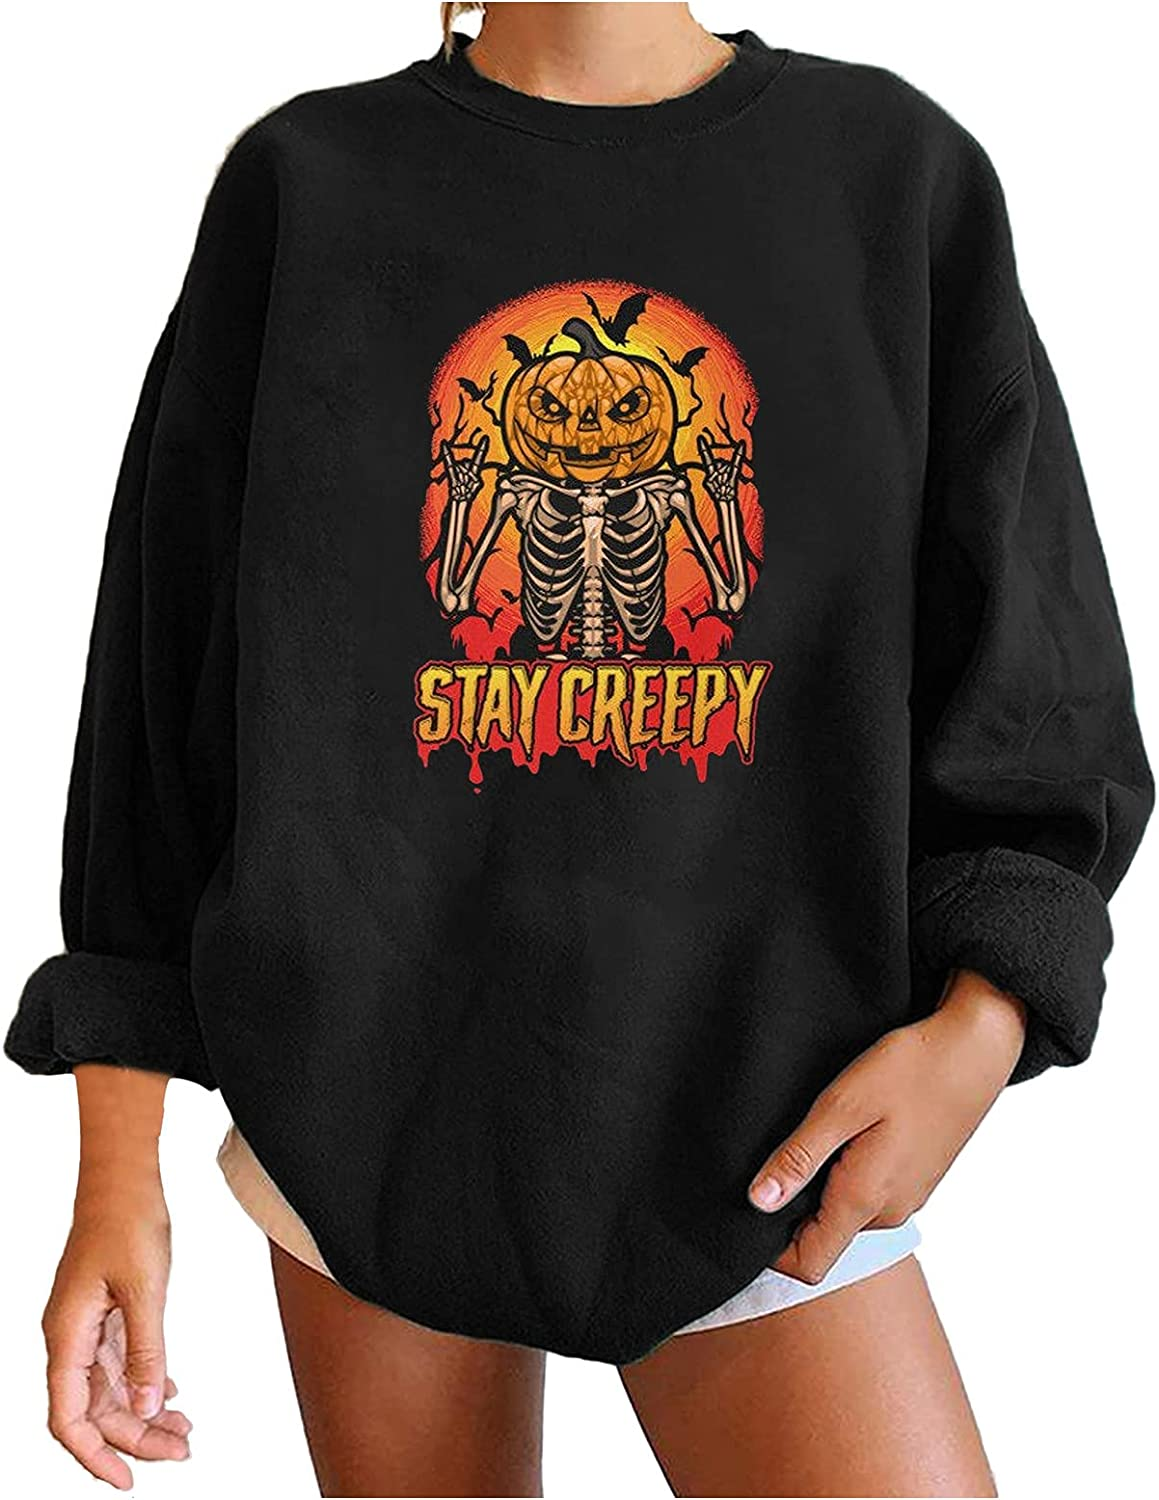 UOCUFY Halloween Shirts for Women,Womens Crewneck Funny Printed Tops Oversized Comfy Blouses Long Sleeve Pullover Sweatshirts